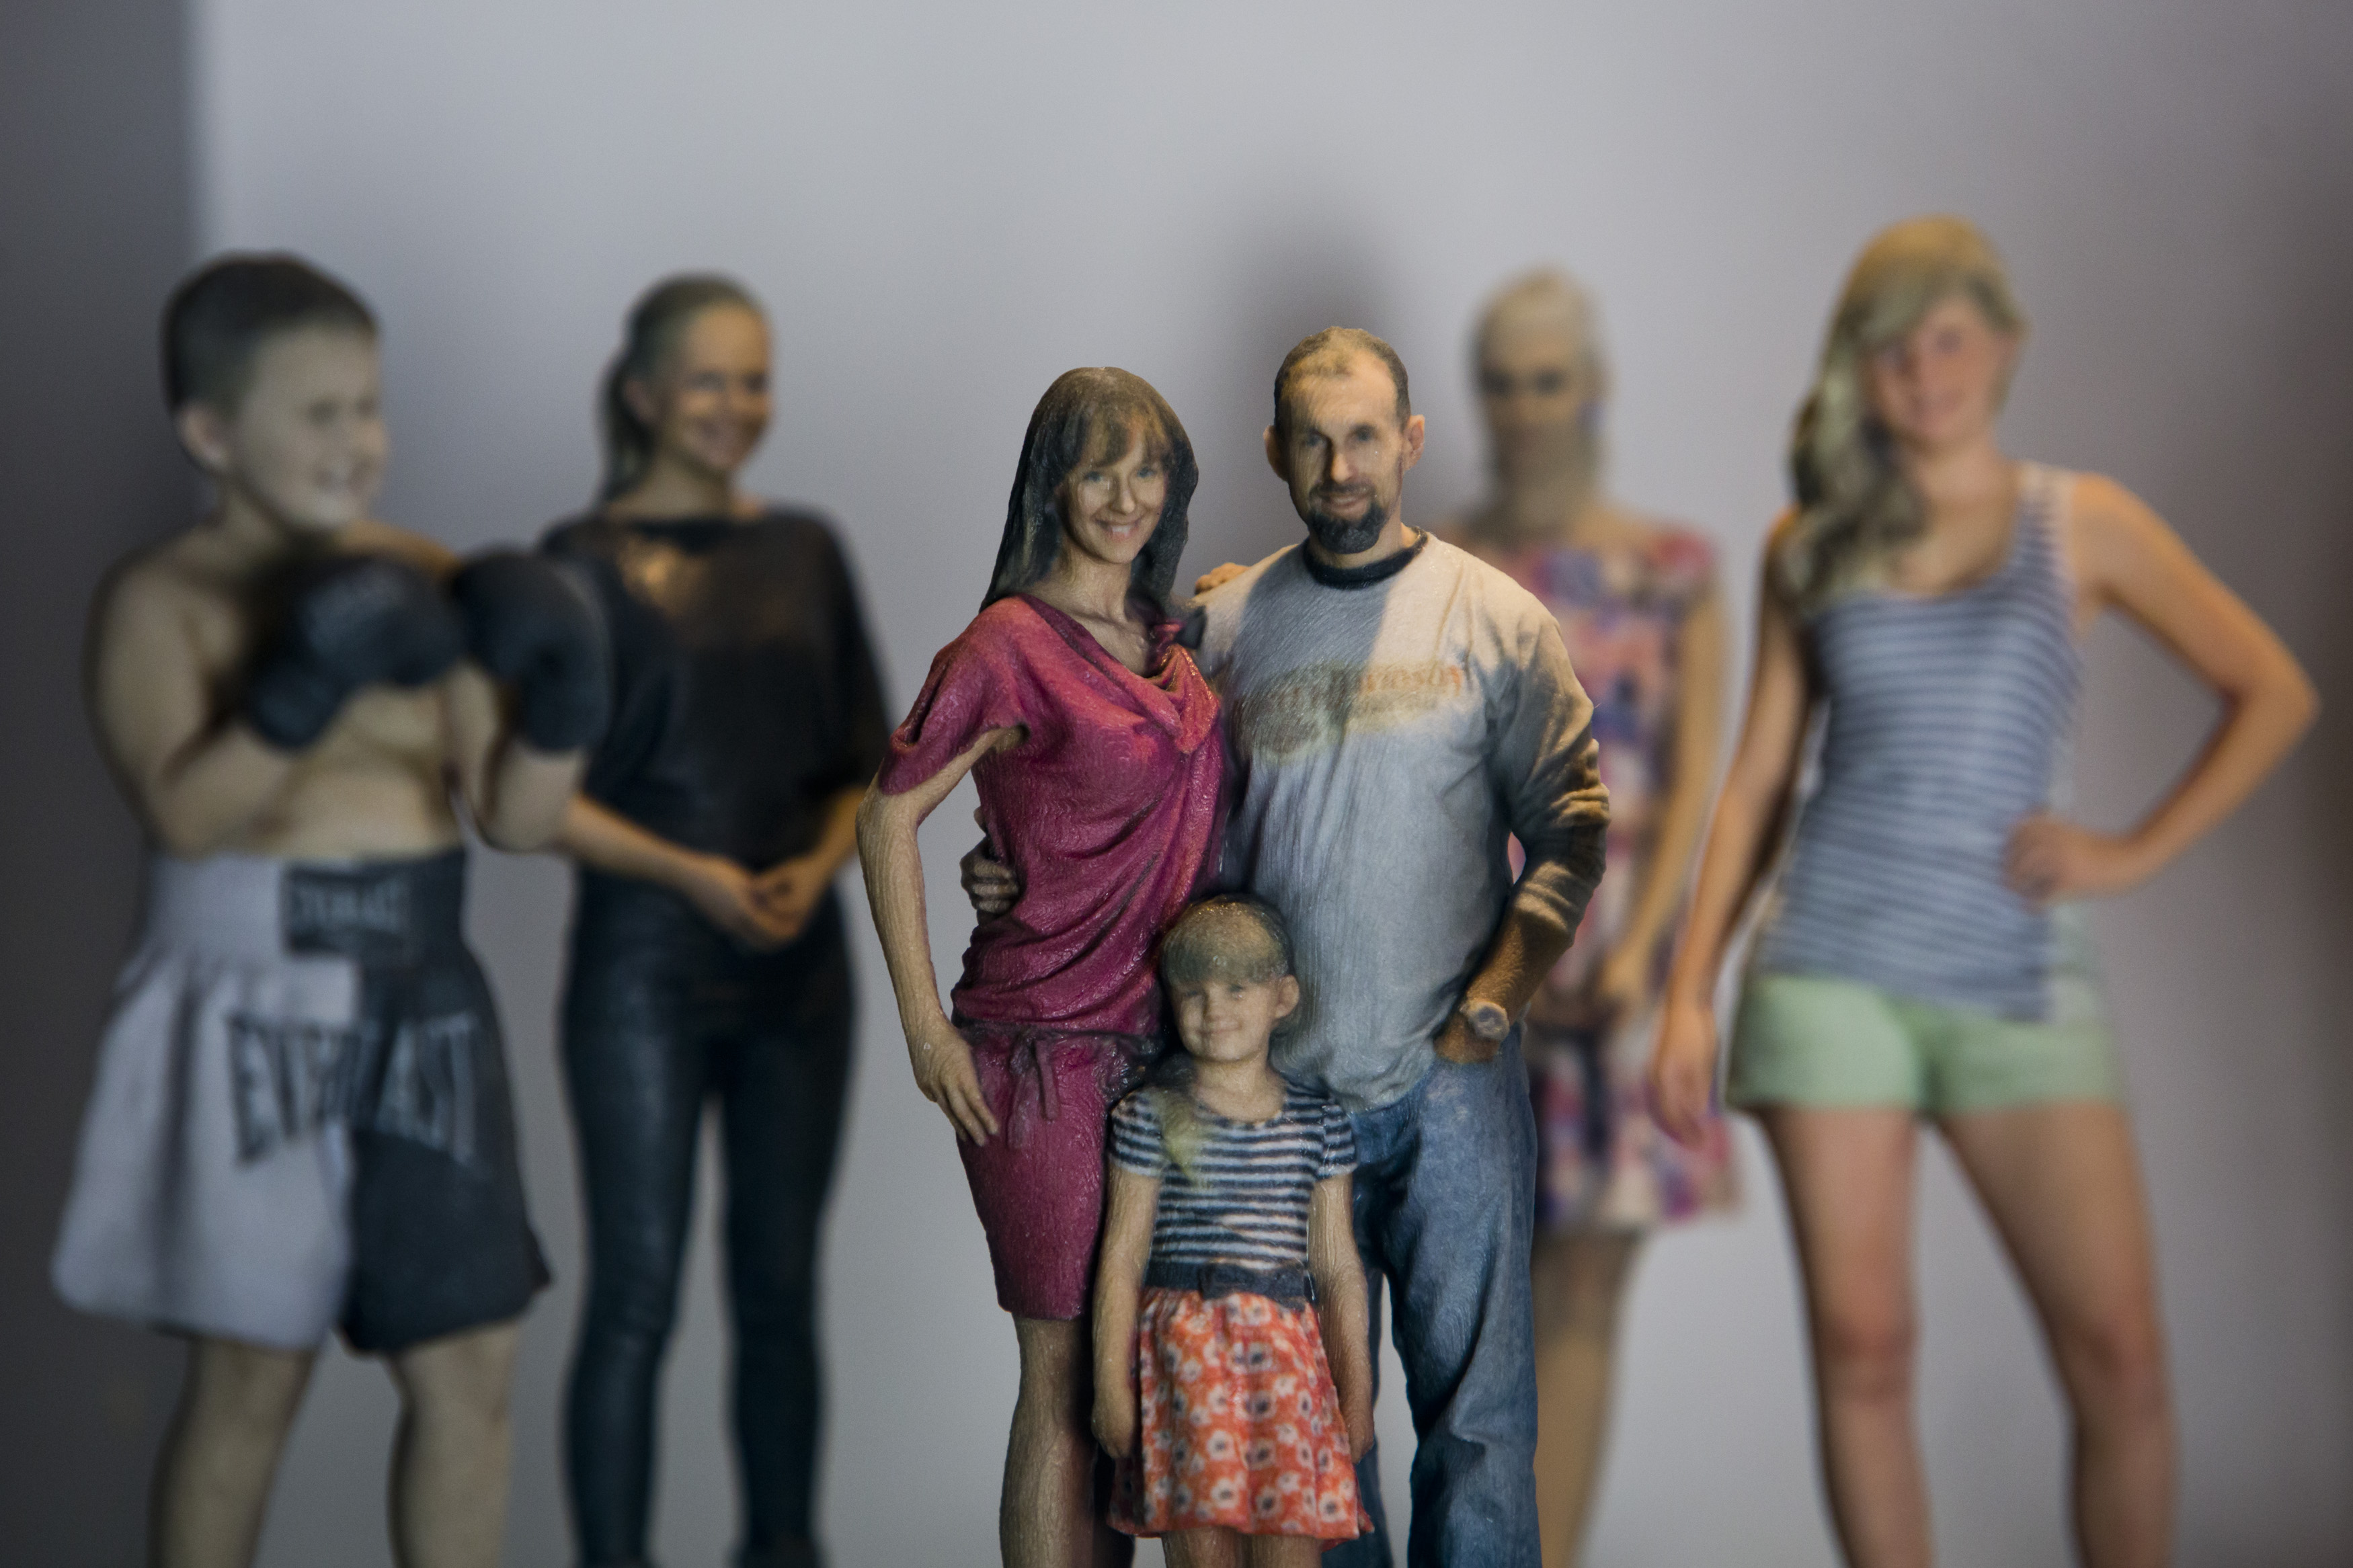 Printed figurines stand on display at the 3D gang company on August 26, 2014 in Prague, Czech Republic.